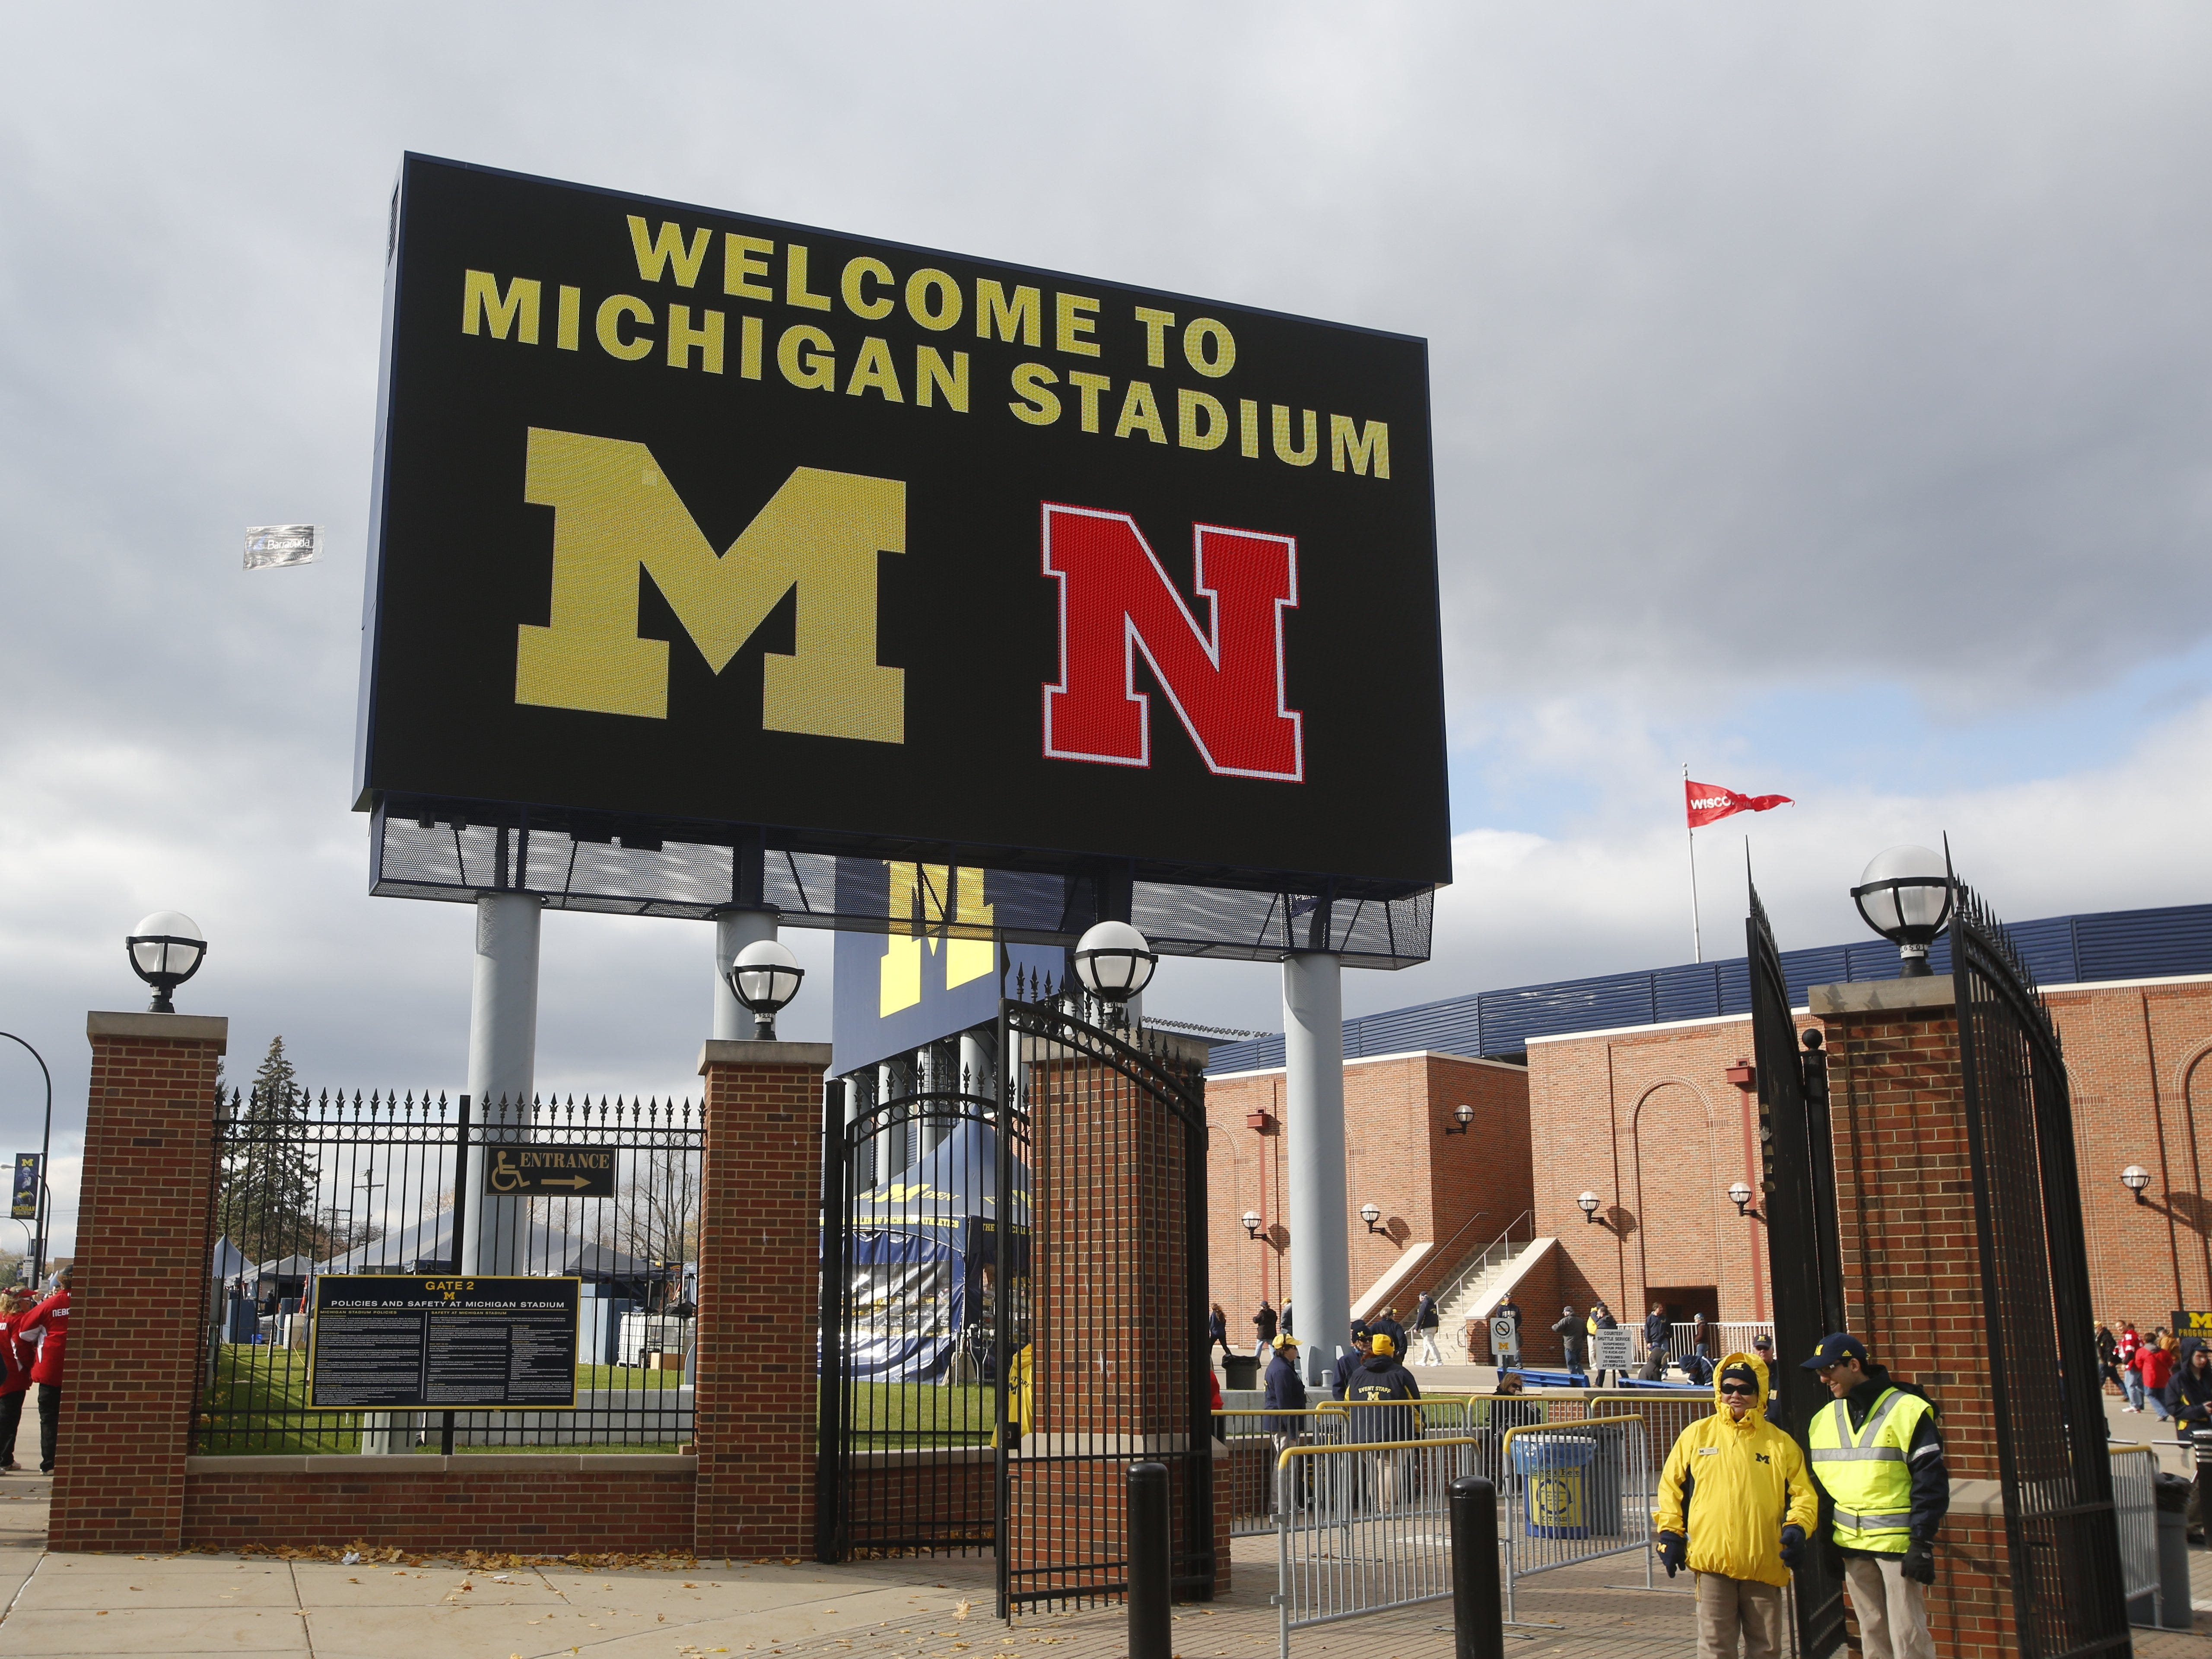 13. Nebraska at Michigan. When: Sept. 22. Where: Ann Arbor. The buzz: The Cornhuskers haven't visited the Big House since 2013 when they won 17-13. This year's game could prove huge in the Big Ten race.